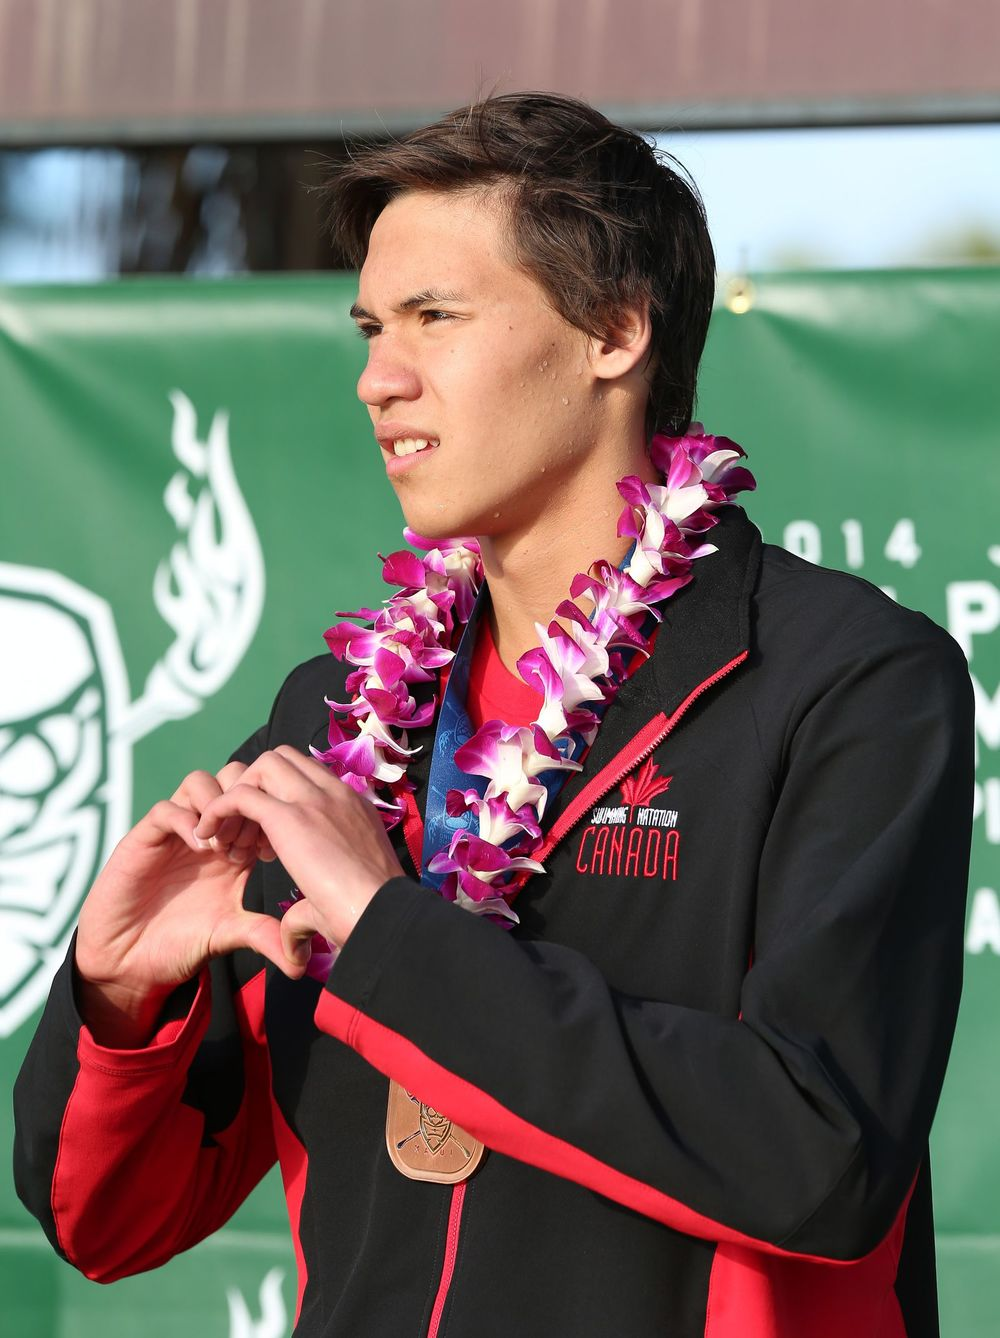 Thormeyer, Bronze medalist at 2014 Junior PanPacs in Kihei, HI